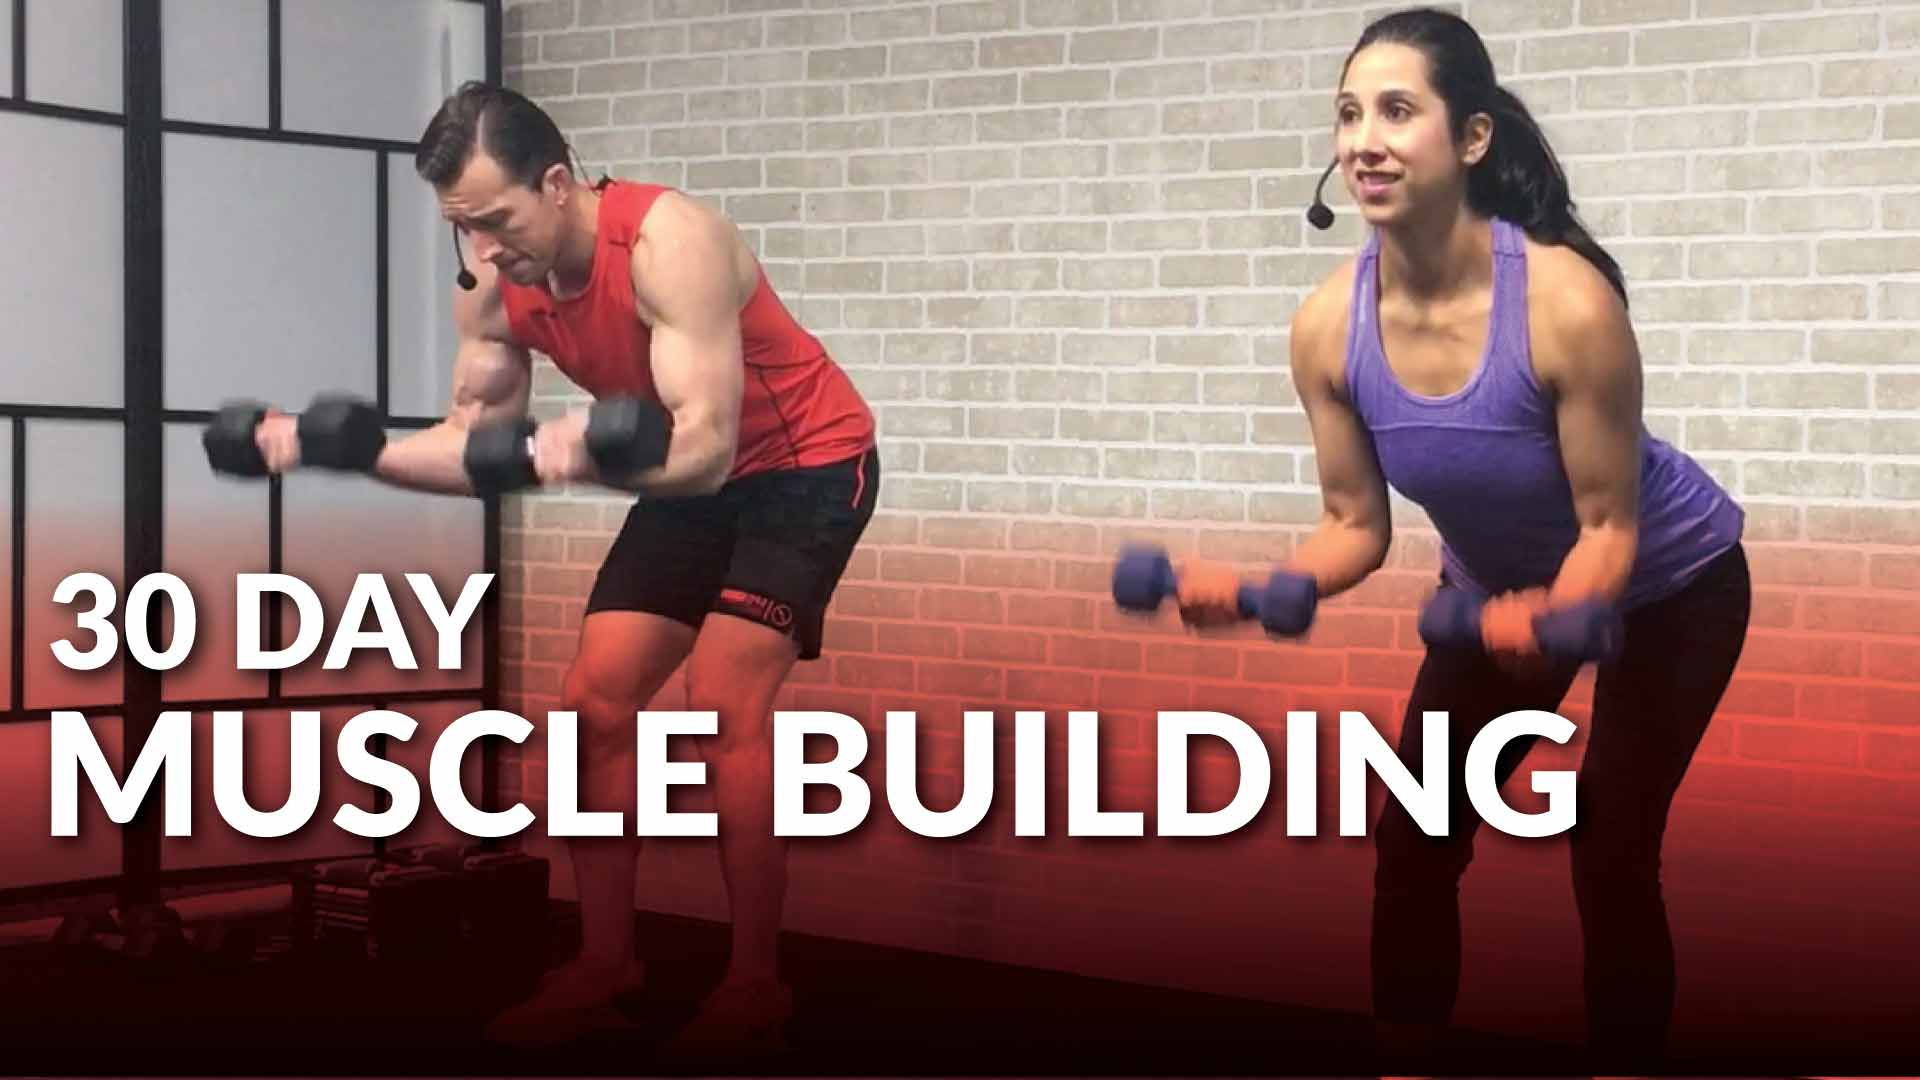 30 Day Muscle Building Program At Home